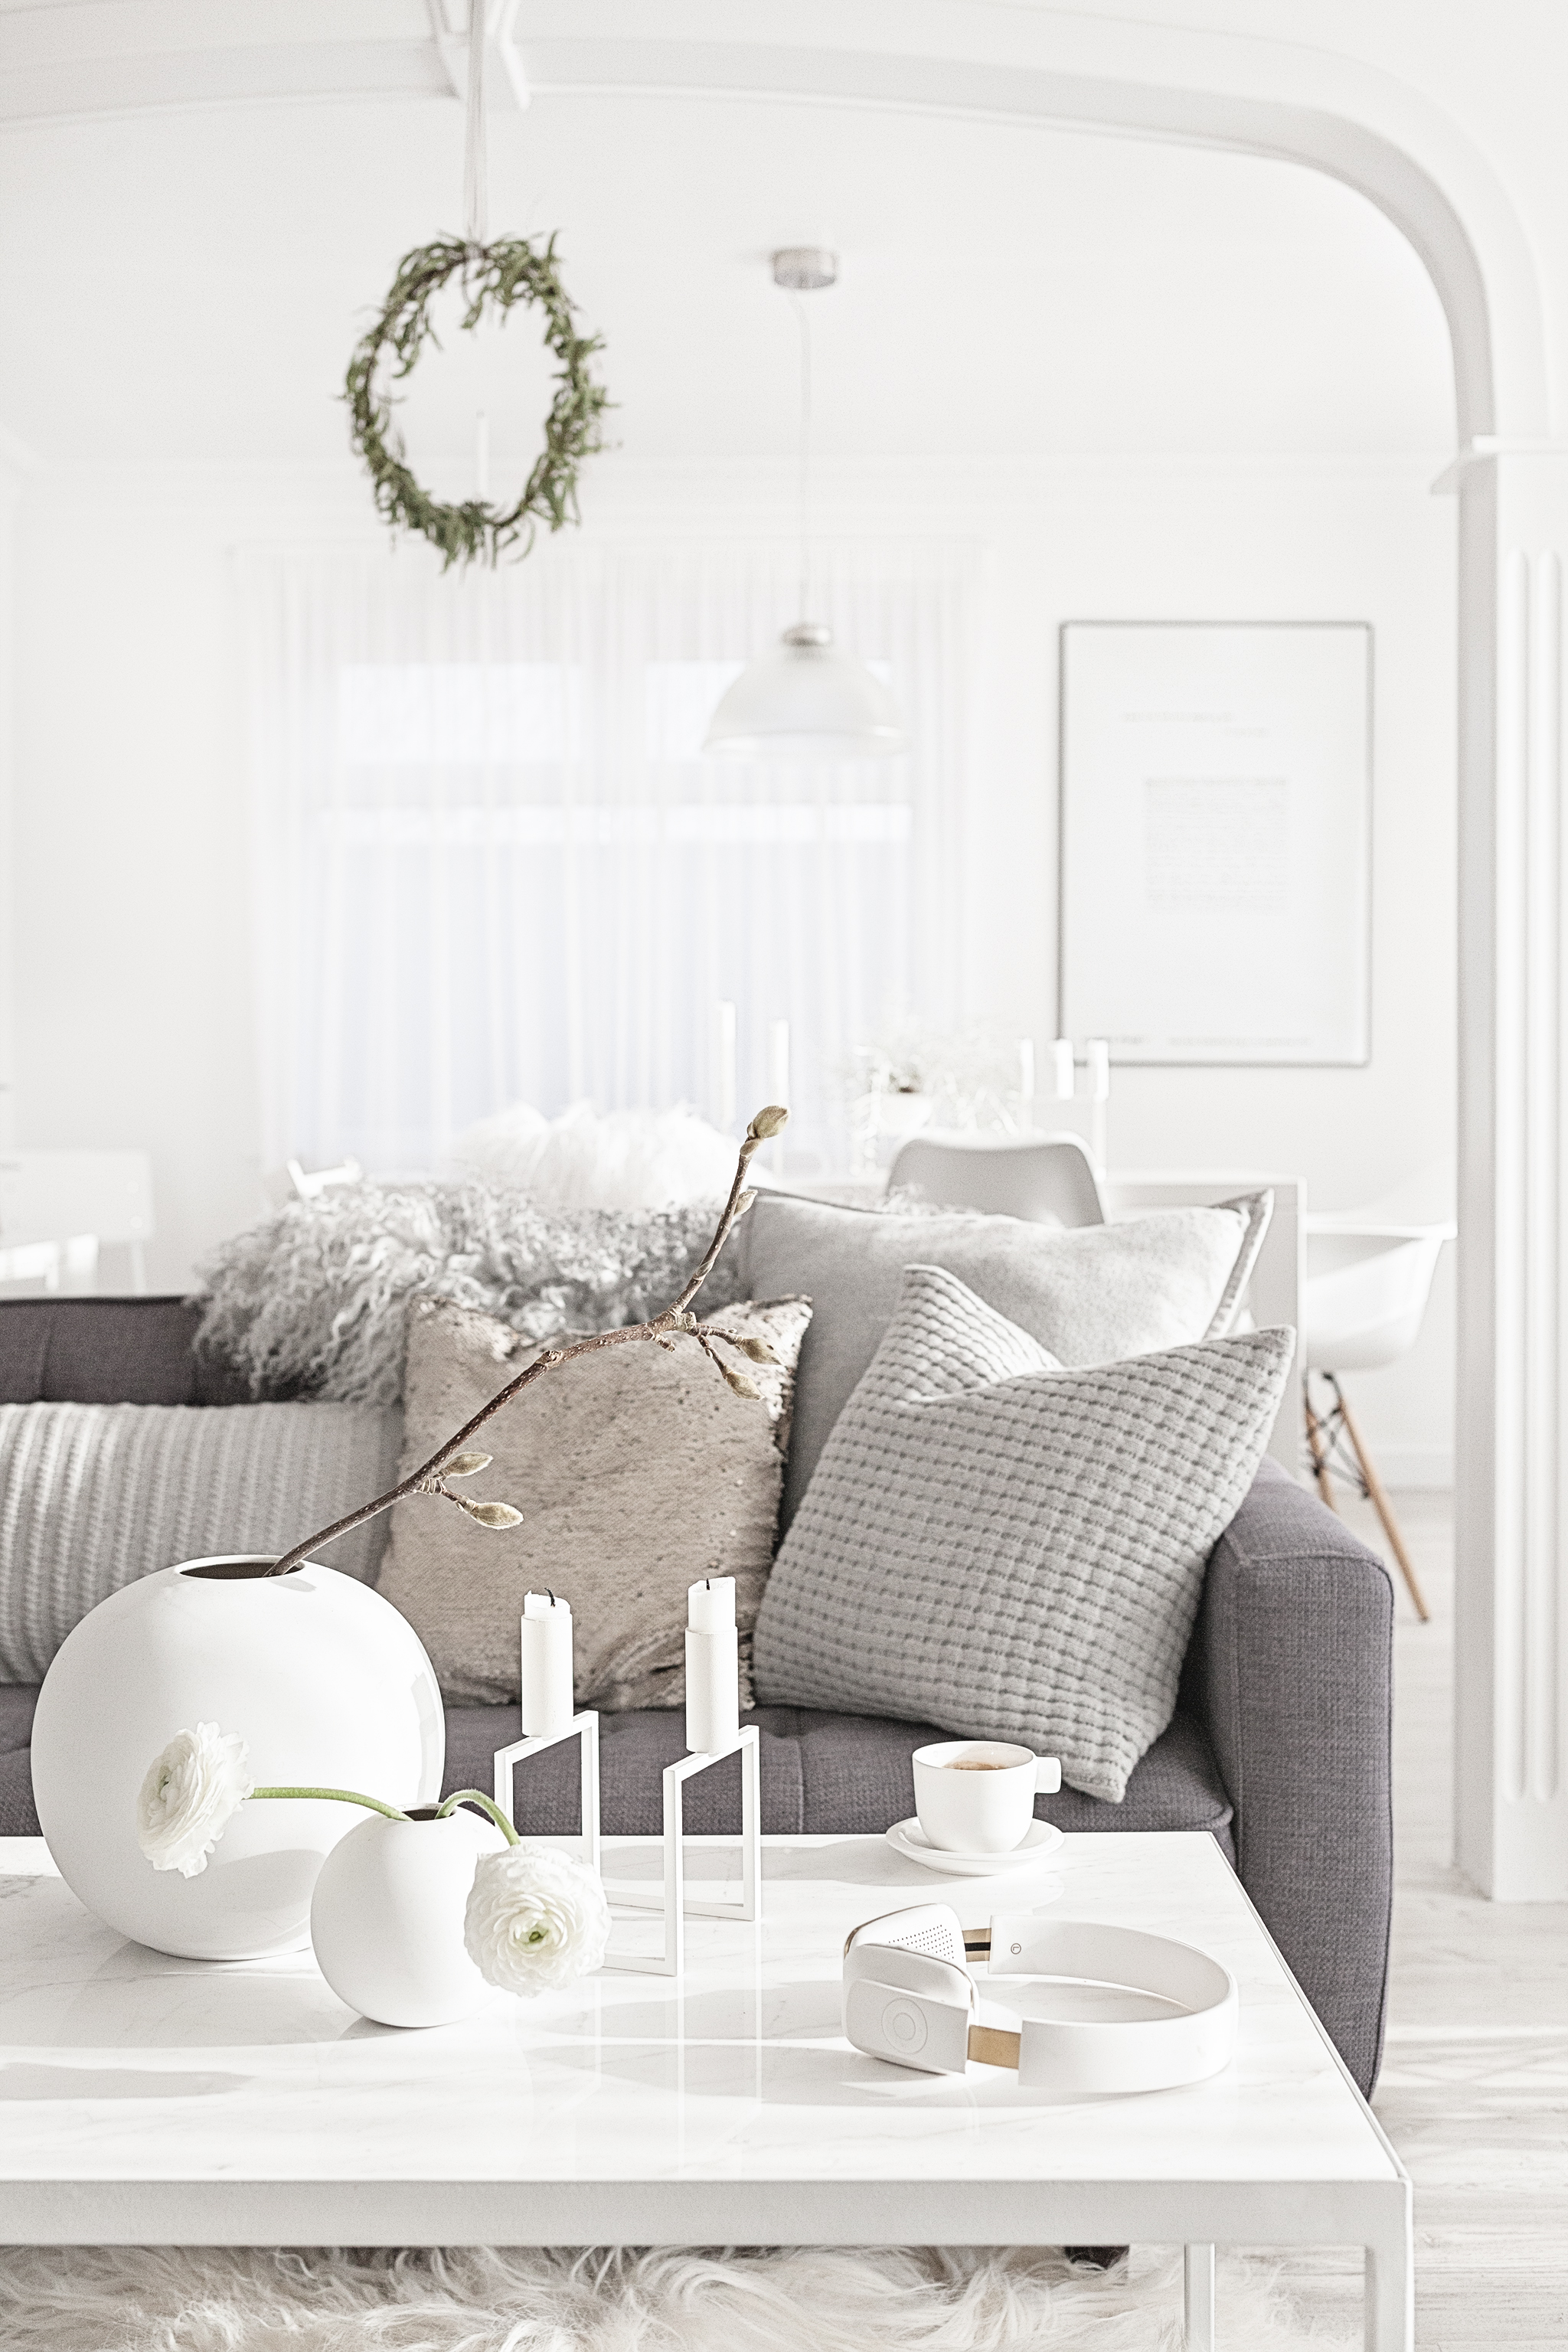 White Vases from   Cooee     White Kubus Line from   By Lassen     Headphones from   Kreafunk     Cushions from The White Company   Pelssau Sheepskin Rug from   Milabert